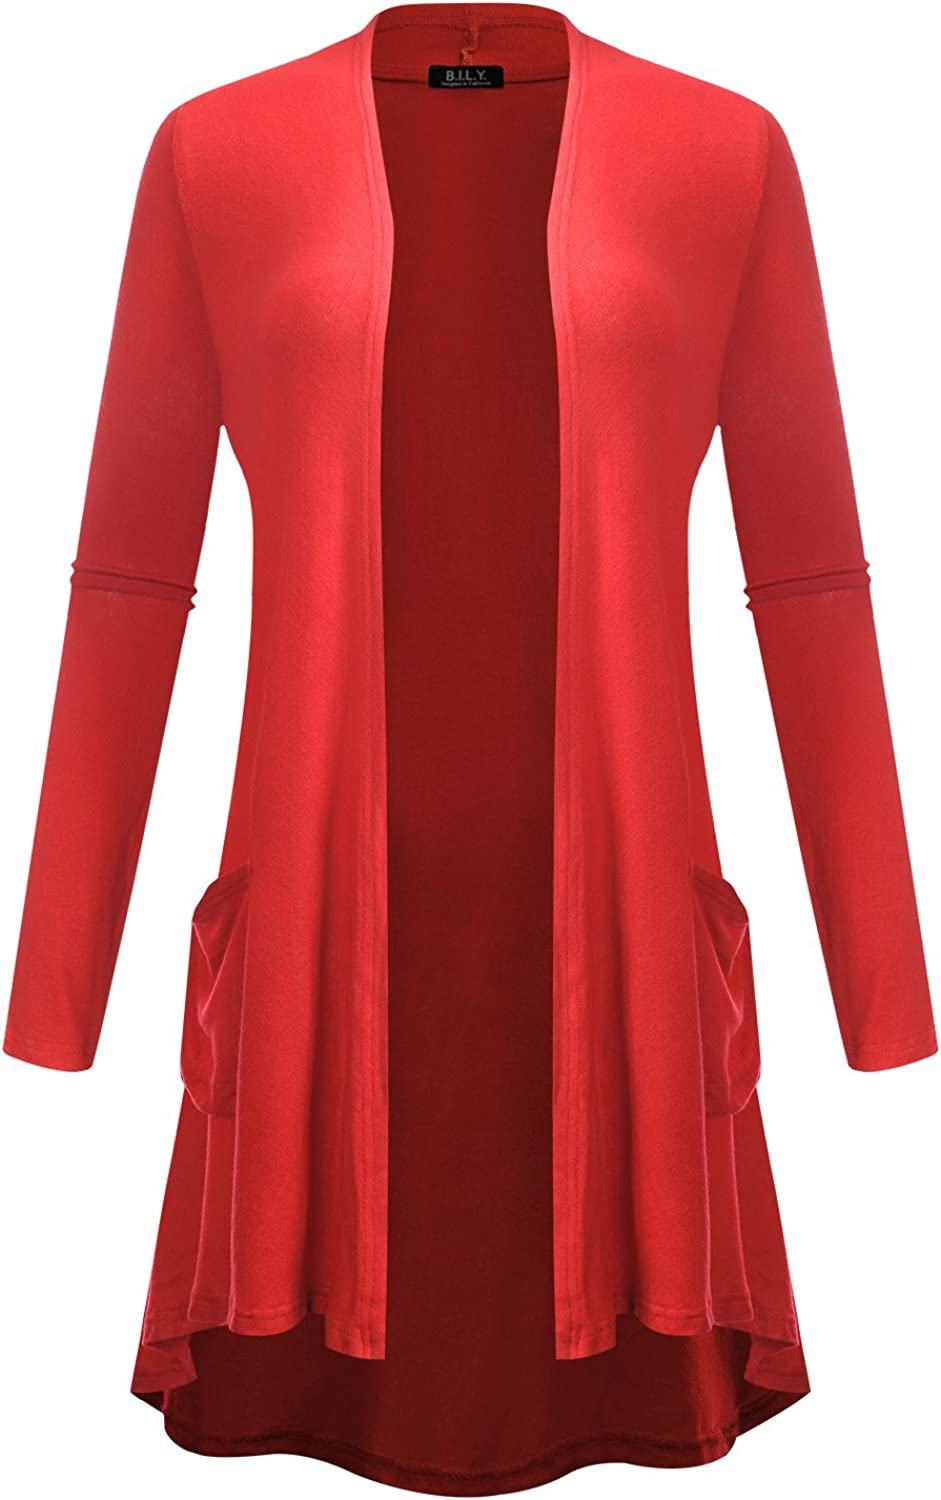 BILY Women's Open Front HighLow Long Sleeve Front Pockets Cardigan Coral Small